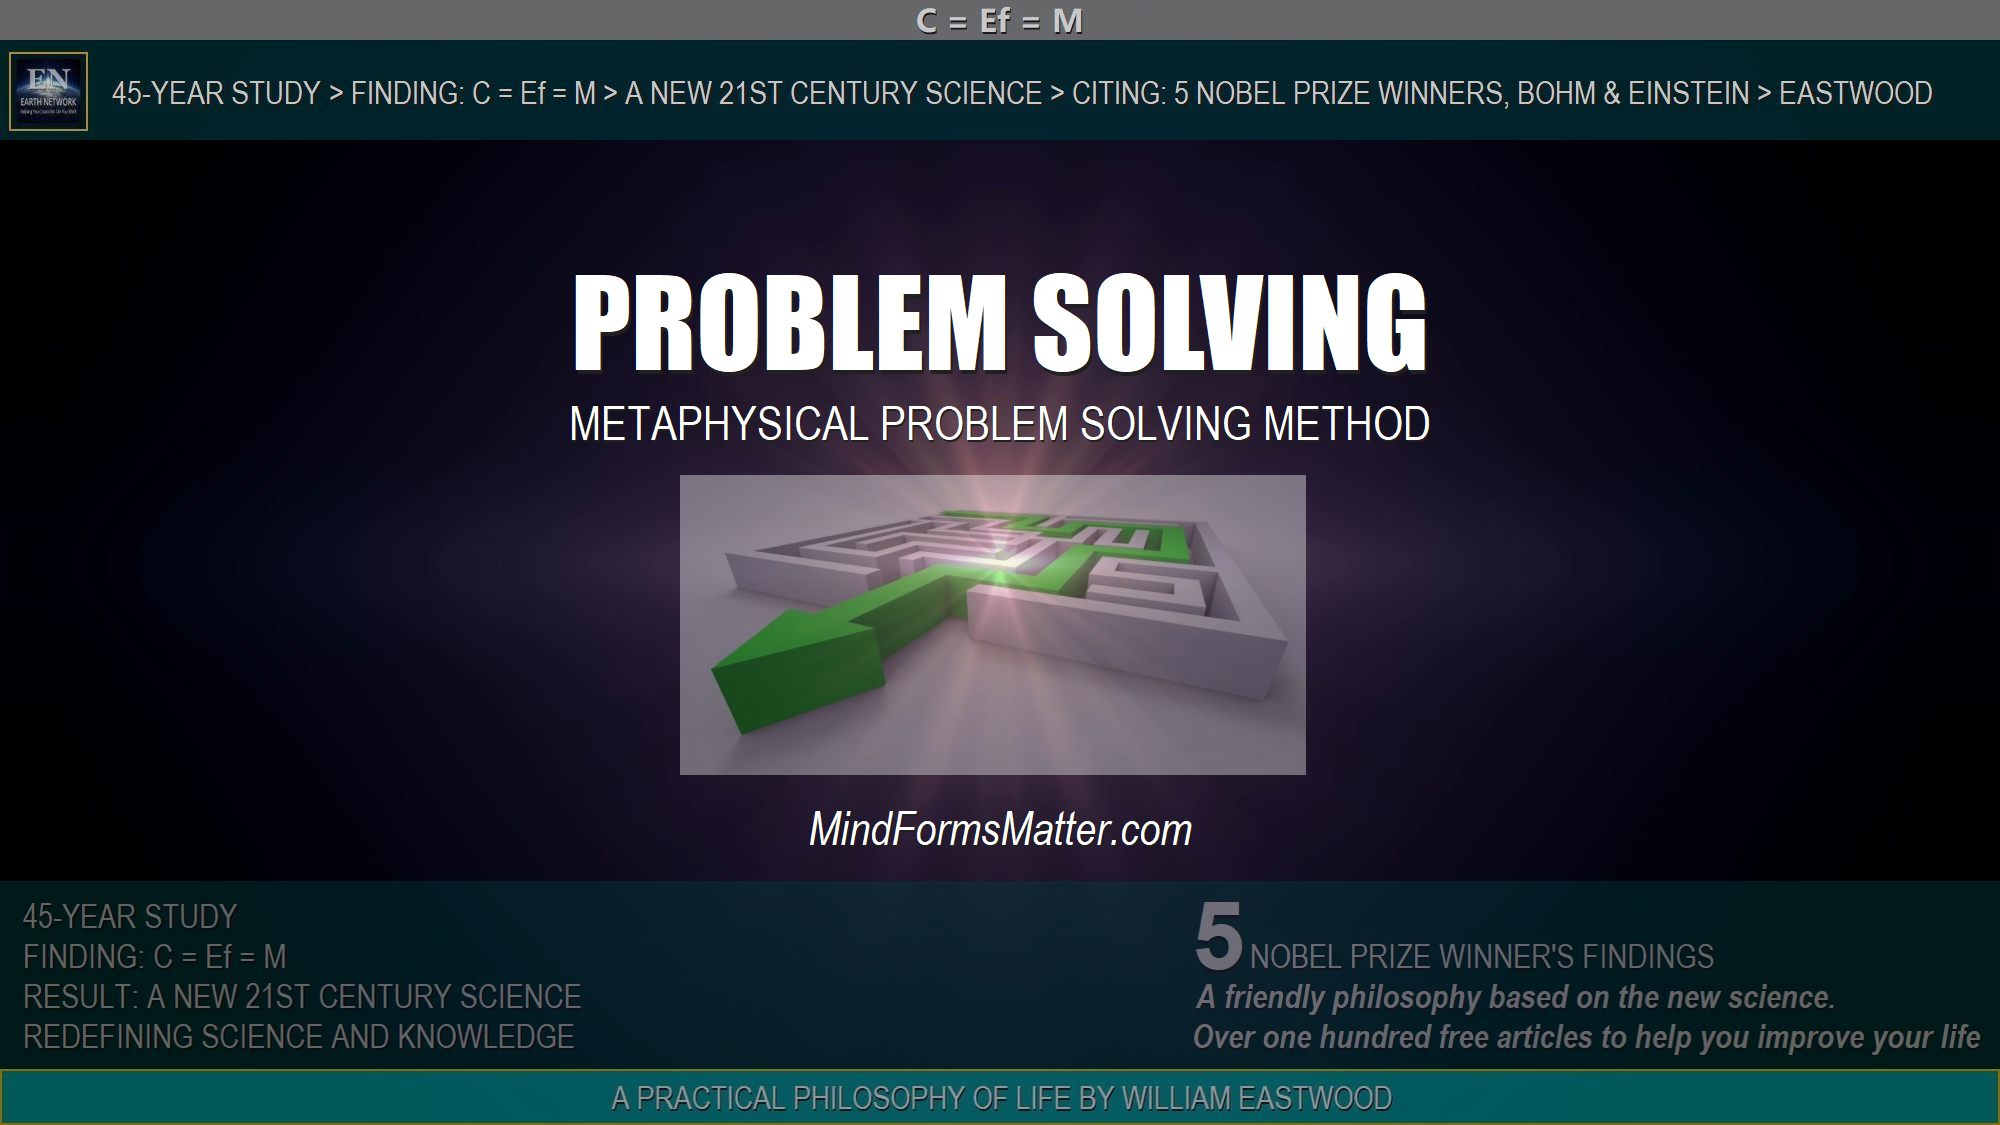 Path through maze depicts how well the advanced metaphysical problem solving method and superior approach to solving problems provided here works.